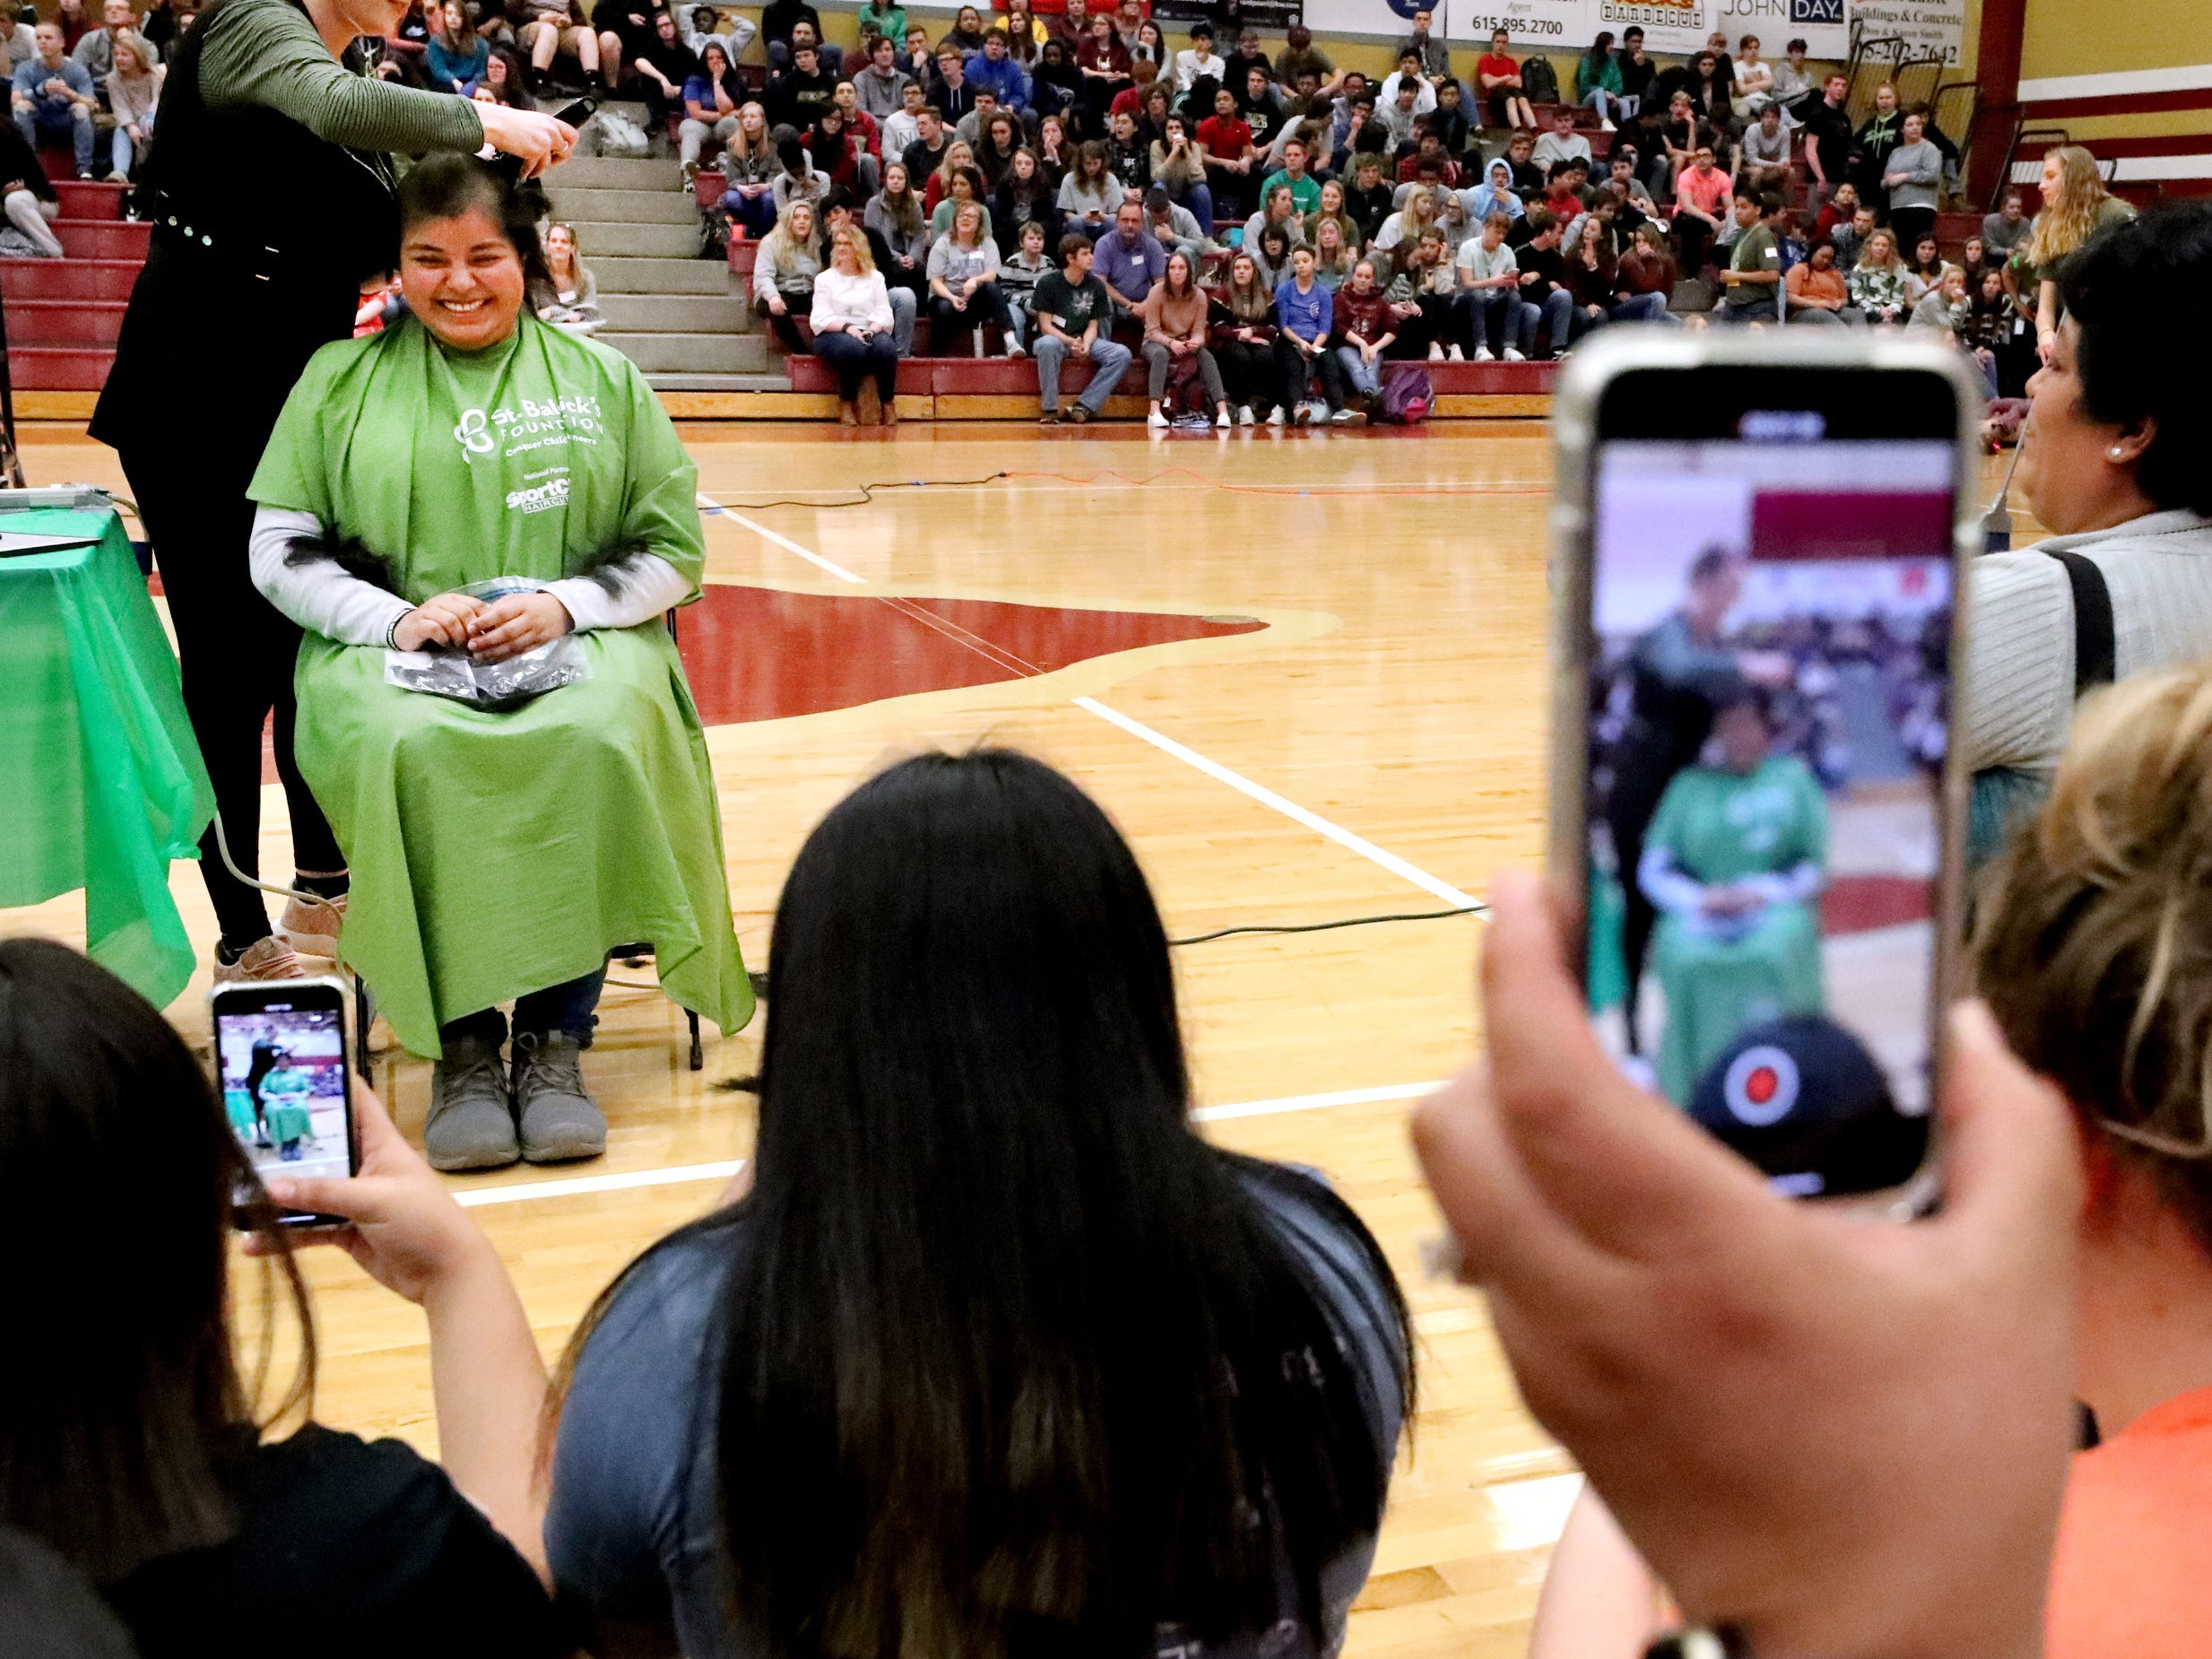 Riverdale senior Juliana Cordova gets her head shaved during Riverdale High School's sixth annual Brave the Shave fundraiser to benefit St. Baldrick's Foundation on Thursday, March 21, 2019. The organization raises funds and awareness for childhood cancer.